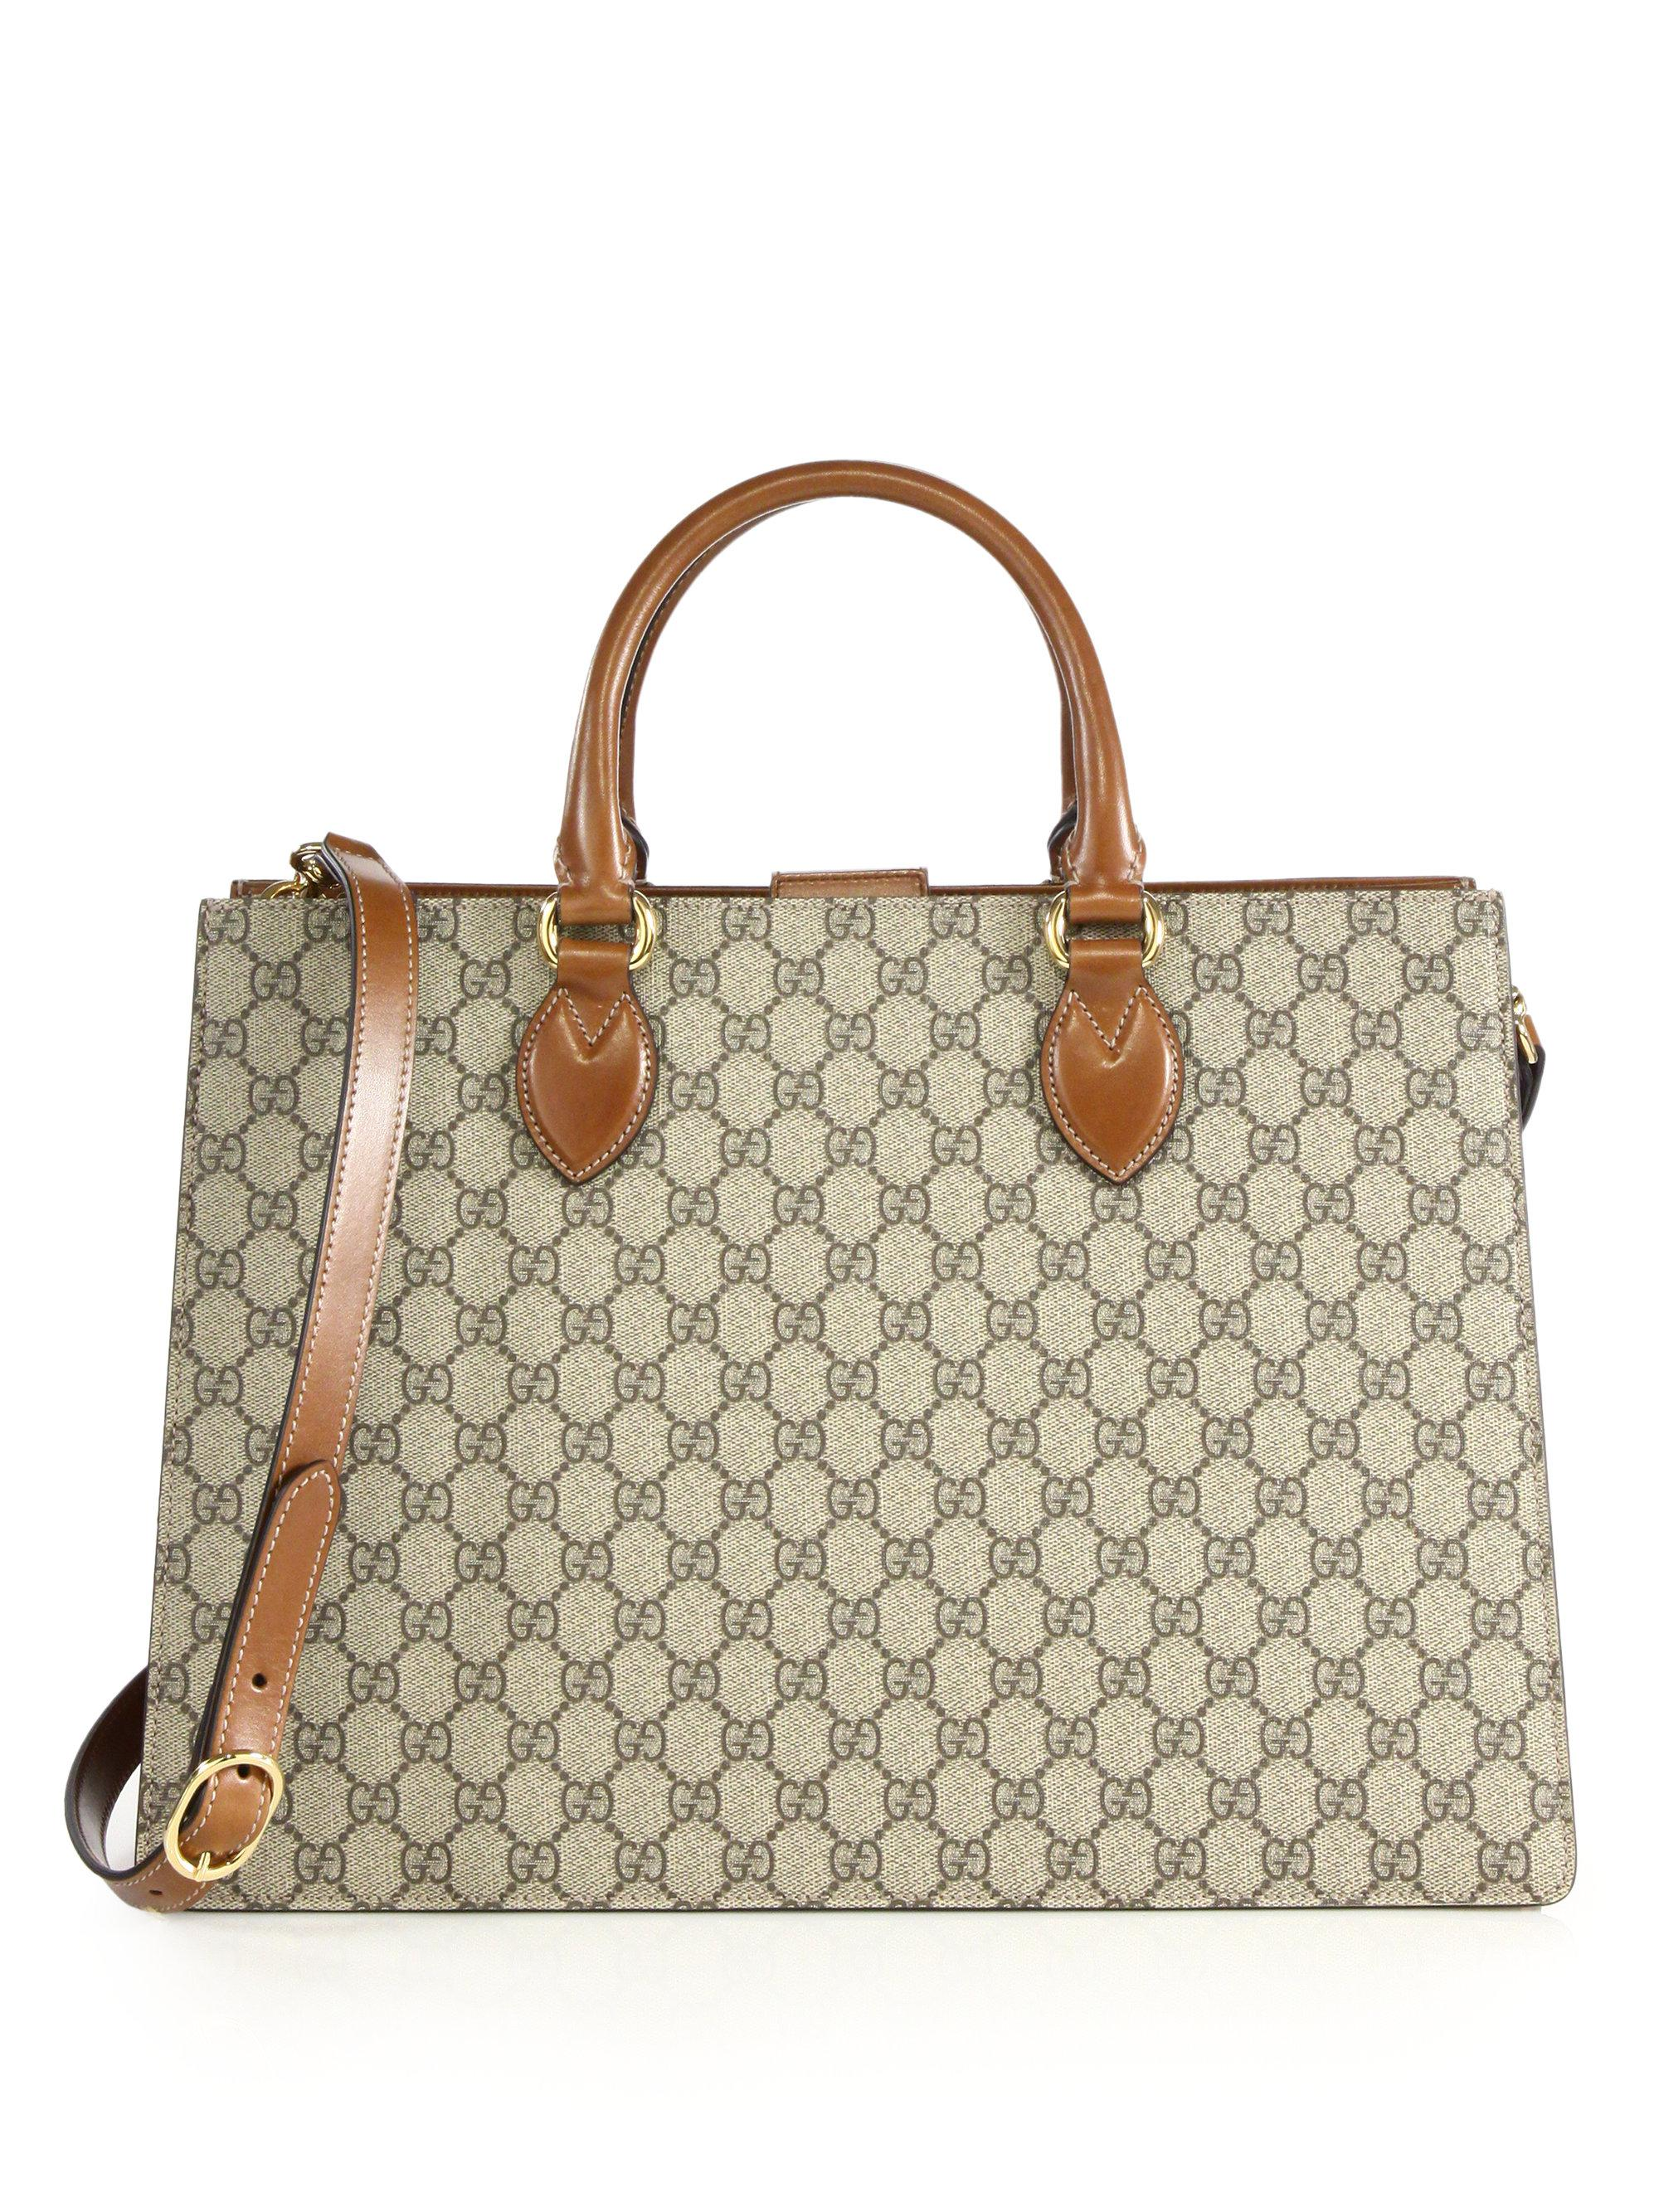 9fc65c86c5fb Gucci Gg Supreme Large Top-handle Bag in Natural - Lyst